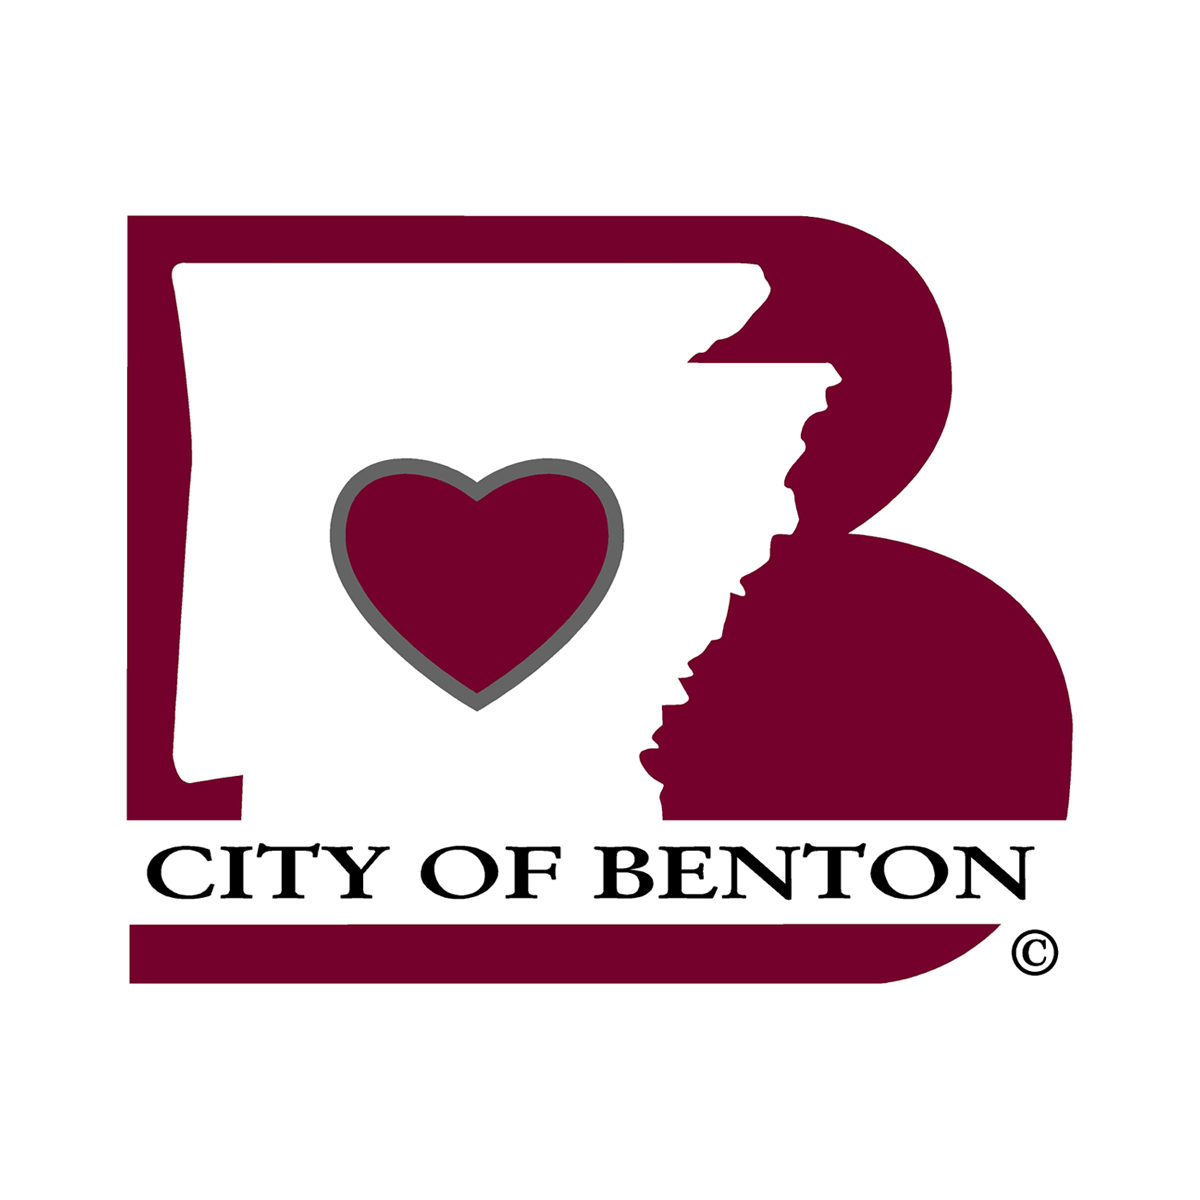 City of Benton